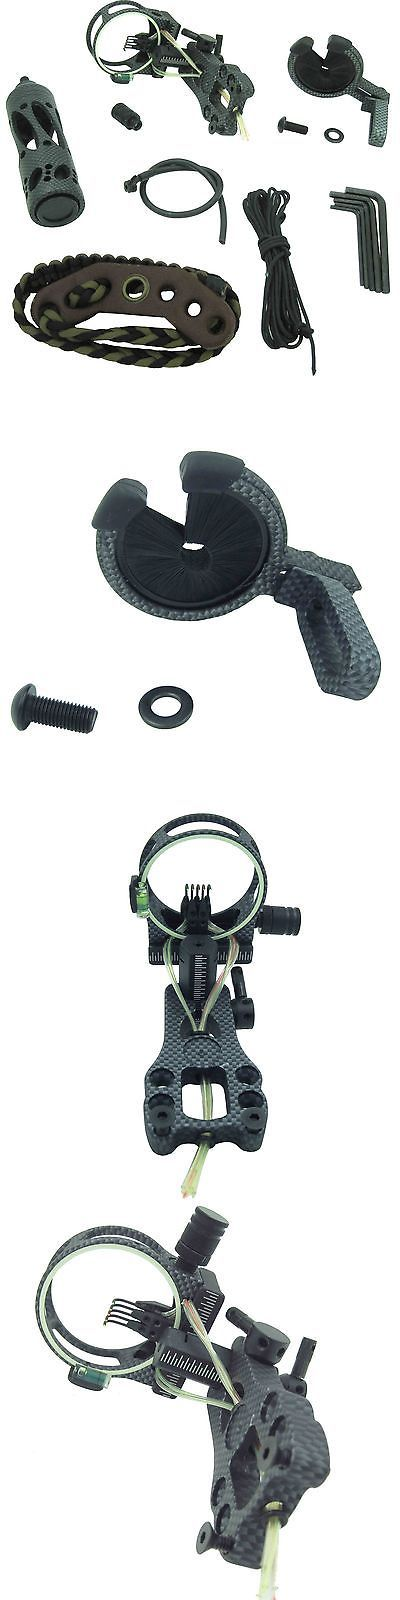 Archery Sets and Kits 161751: Advanced Archery Upgrade Bow Sight Kit,Arrow Rest,Bow Stabiliser Bow Peep BUY IT NOW ONLY: $47.59